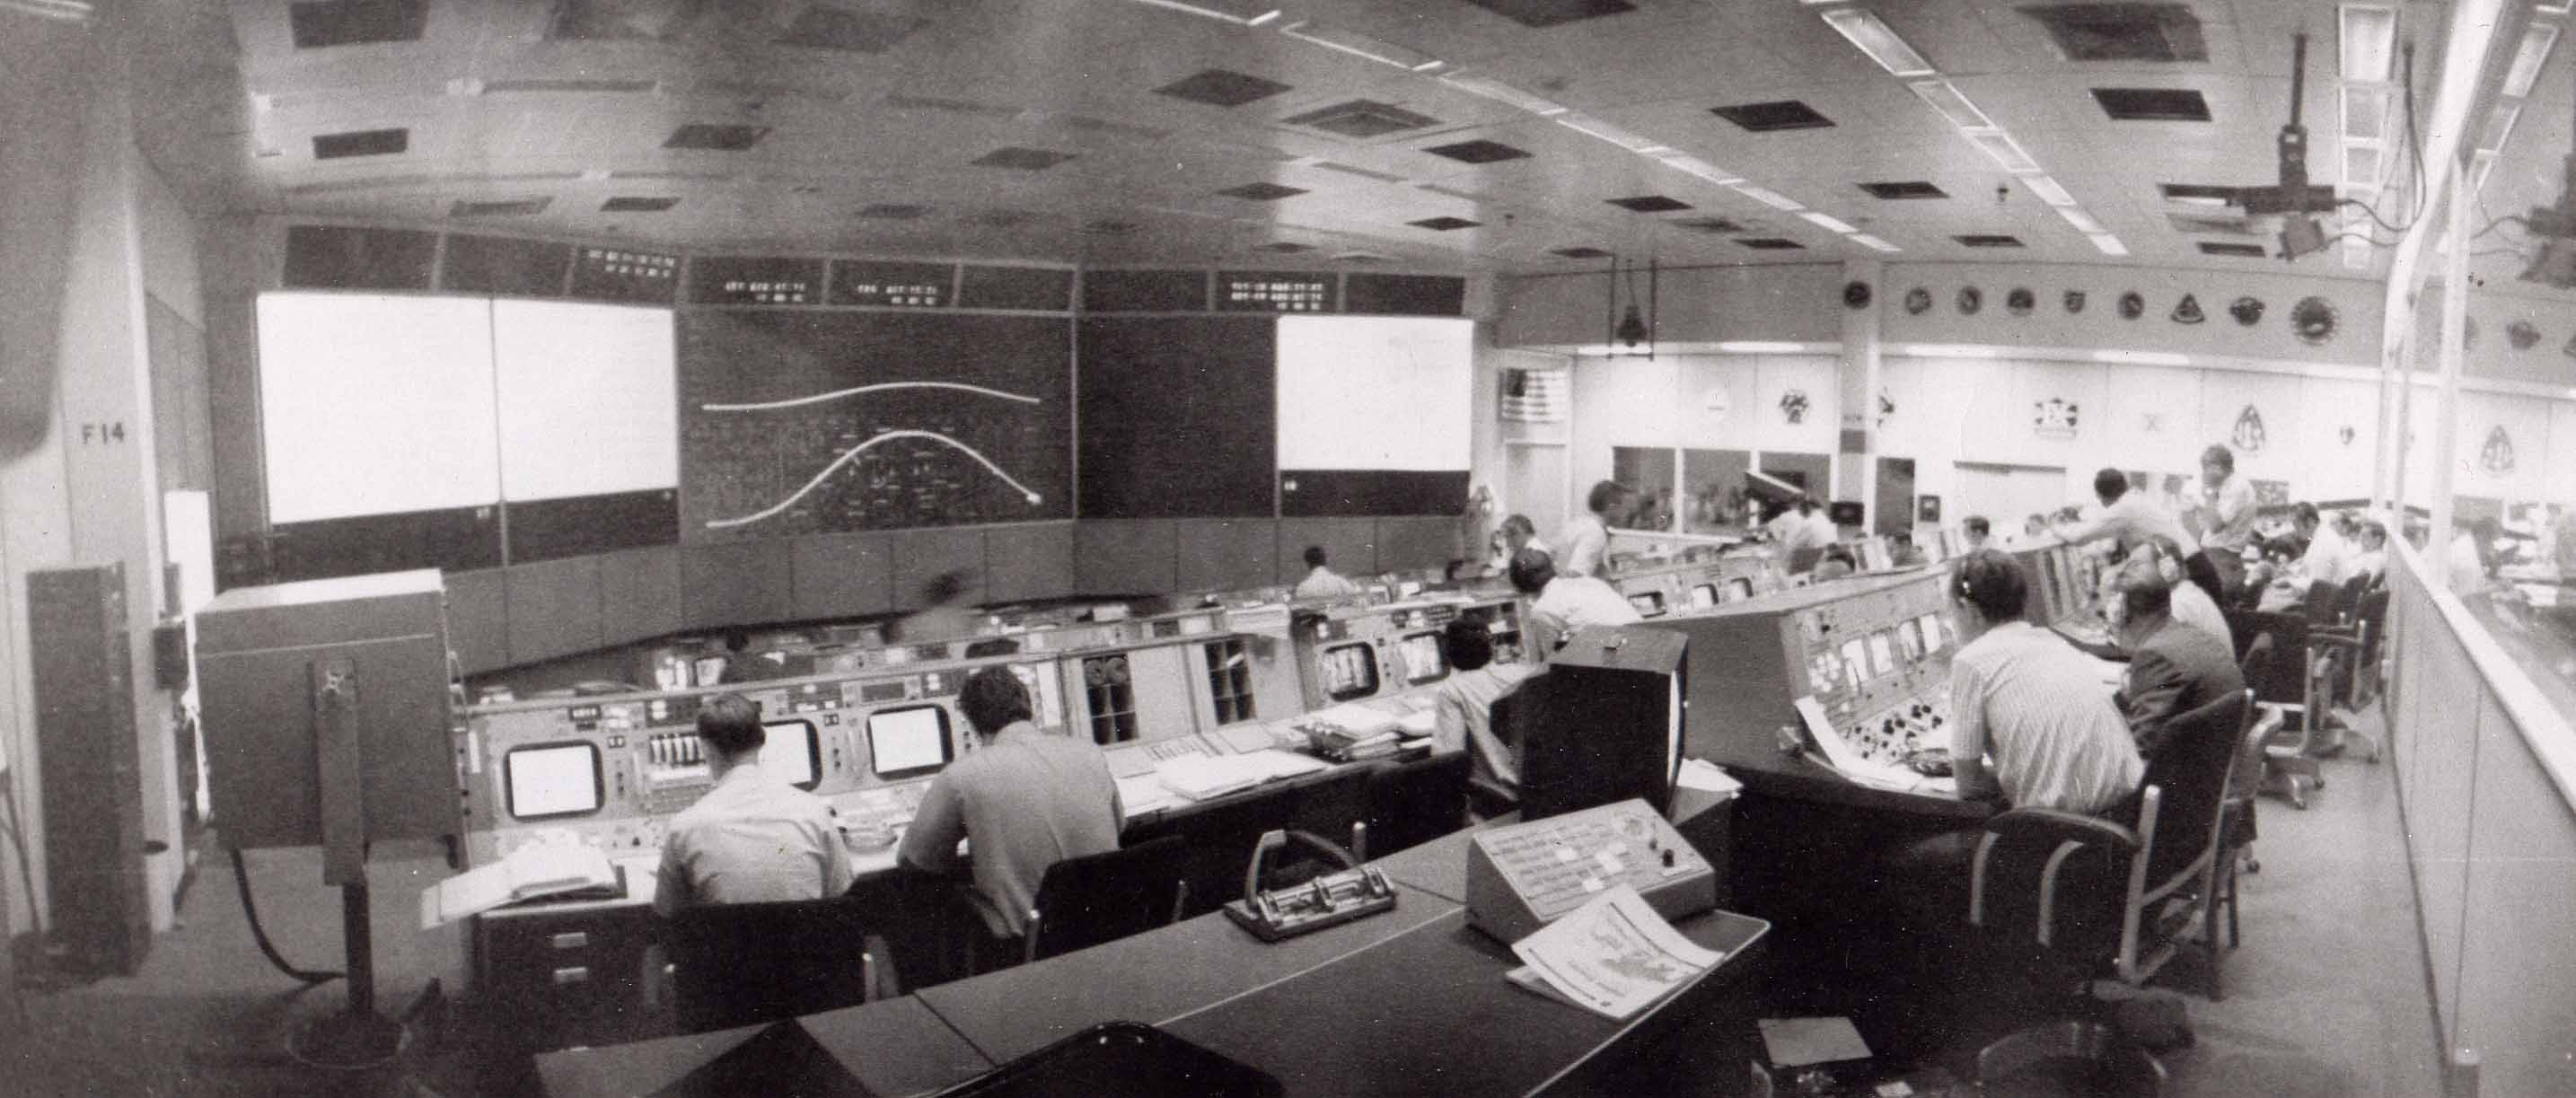 houston mission control center - photo #31